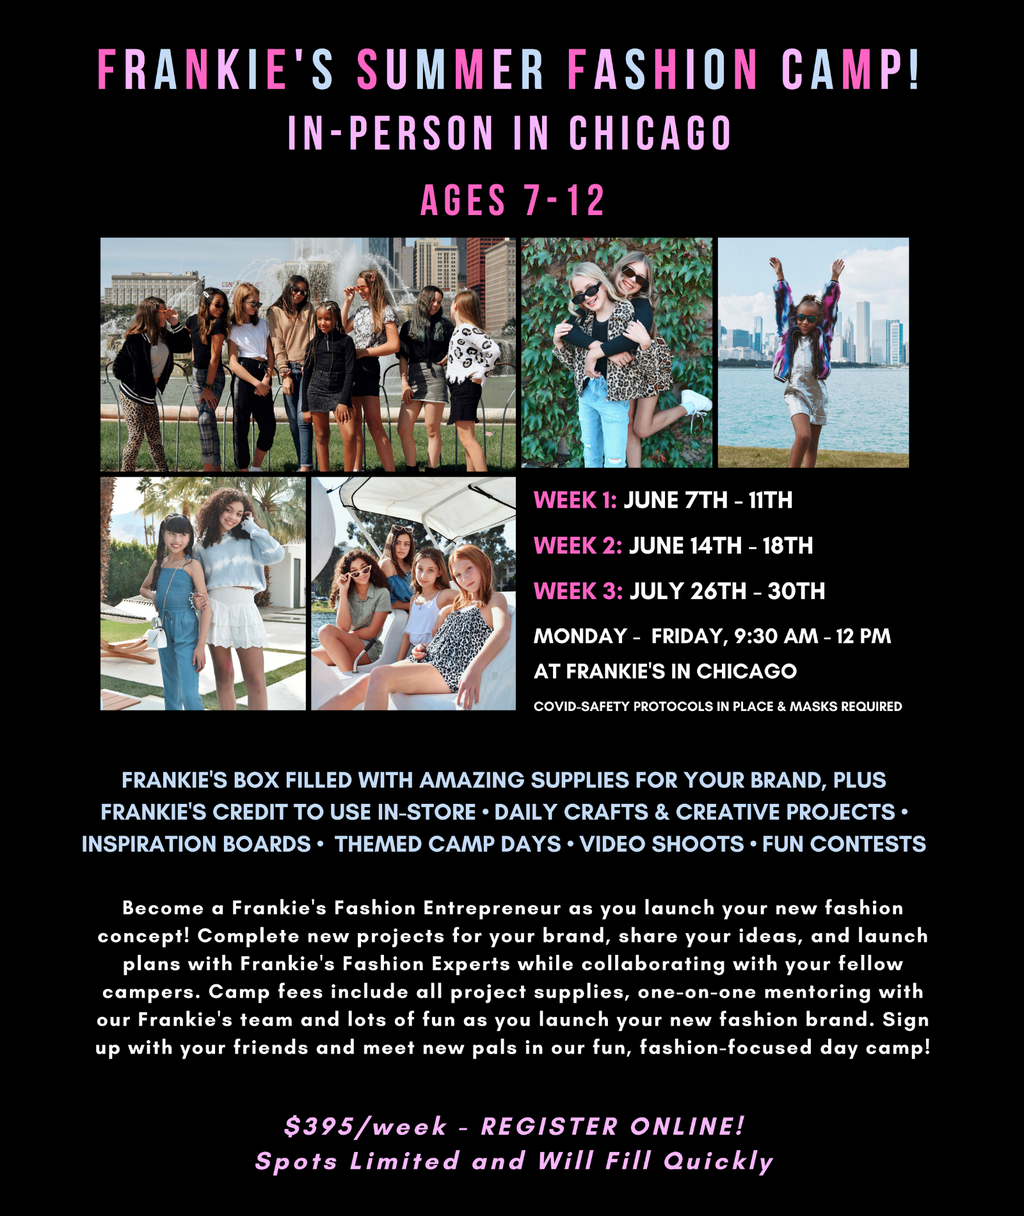 Frankie's Summer Fashion Camp In-Person in Chicago (Ages 7-12) SUMMER 2021!